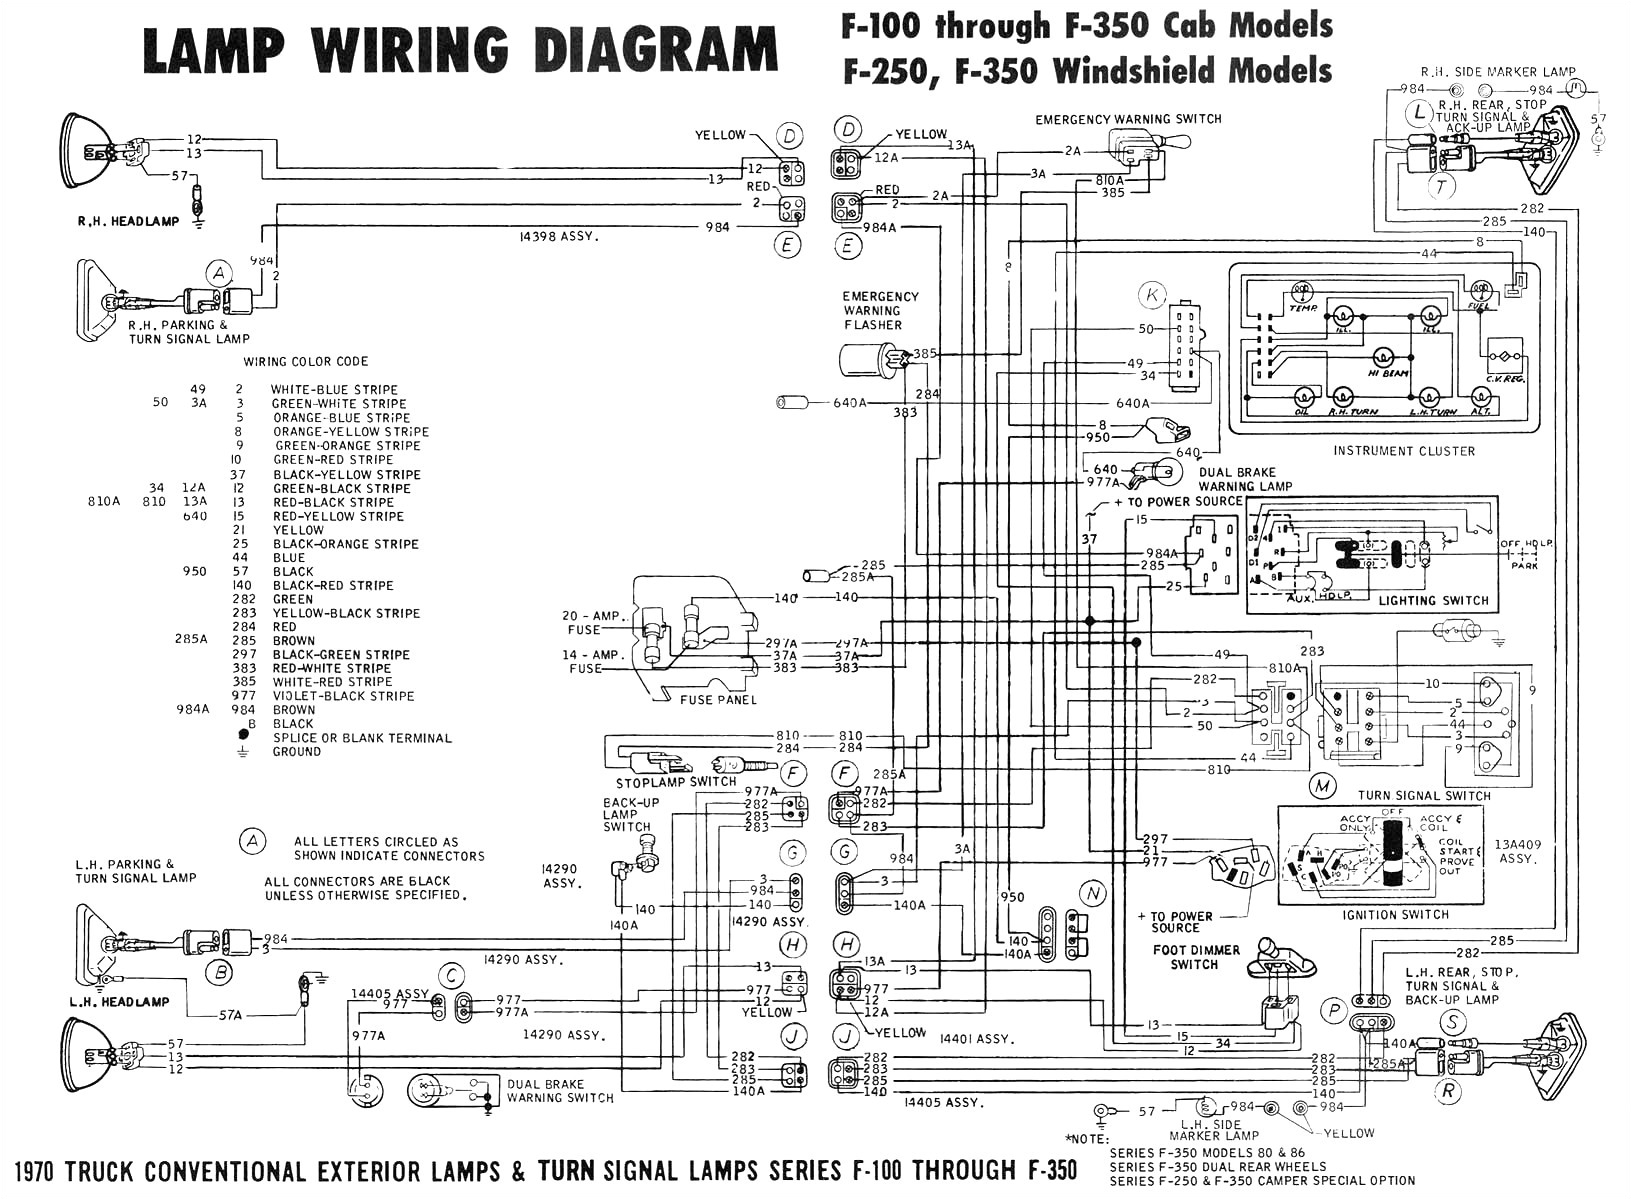 1993 ford f600 wiring diagrams wiring diagram host 1968